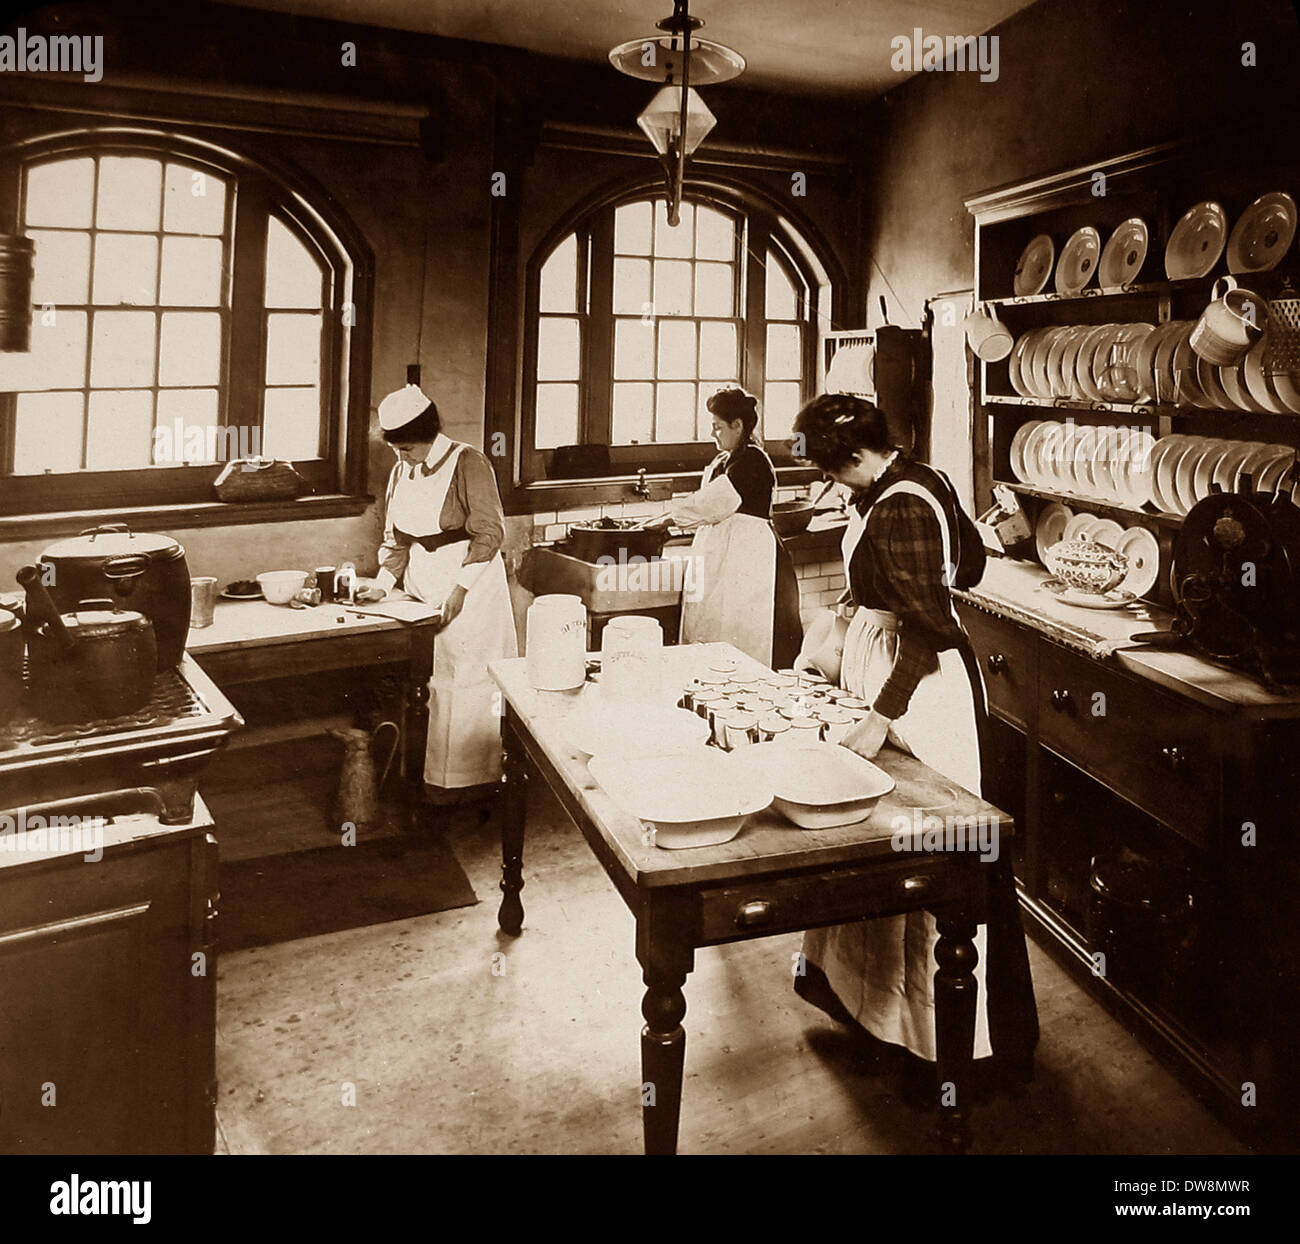 1920/30s School kitchen - Stock Image